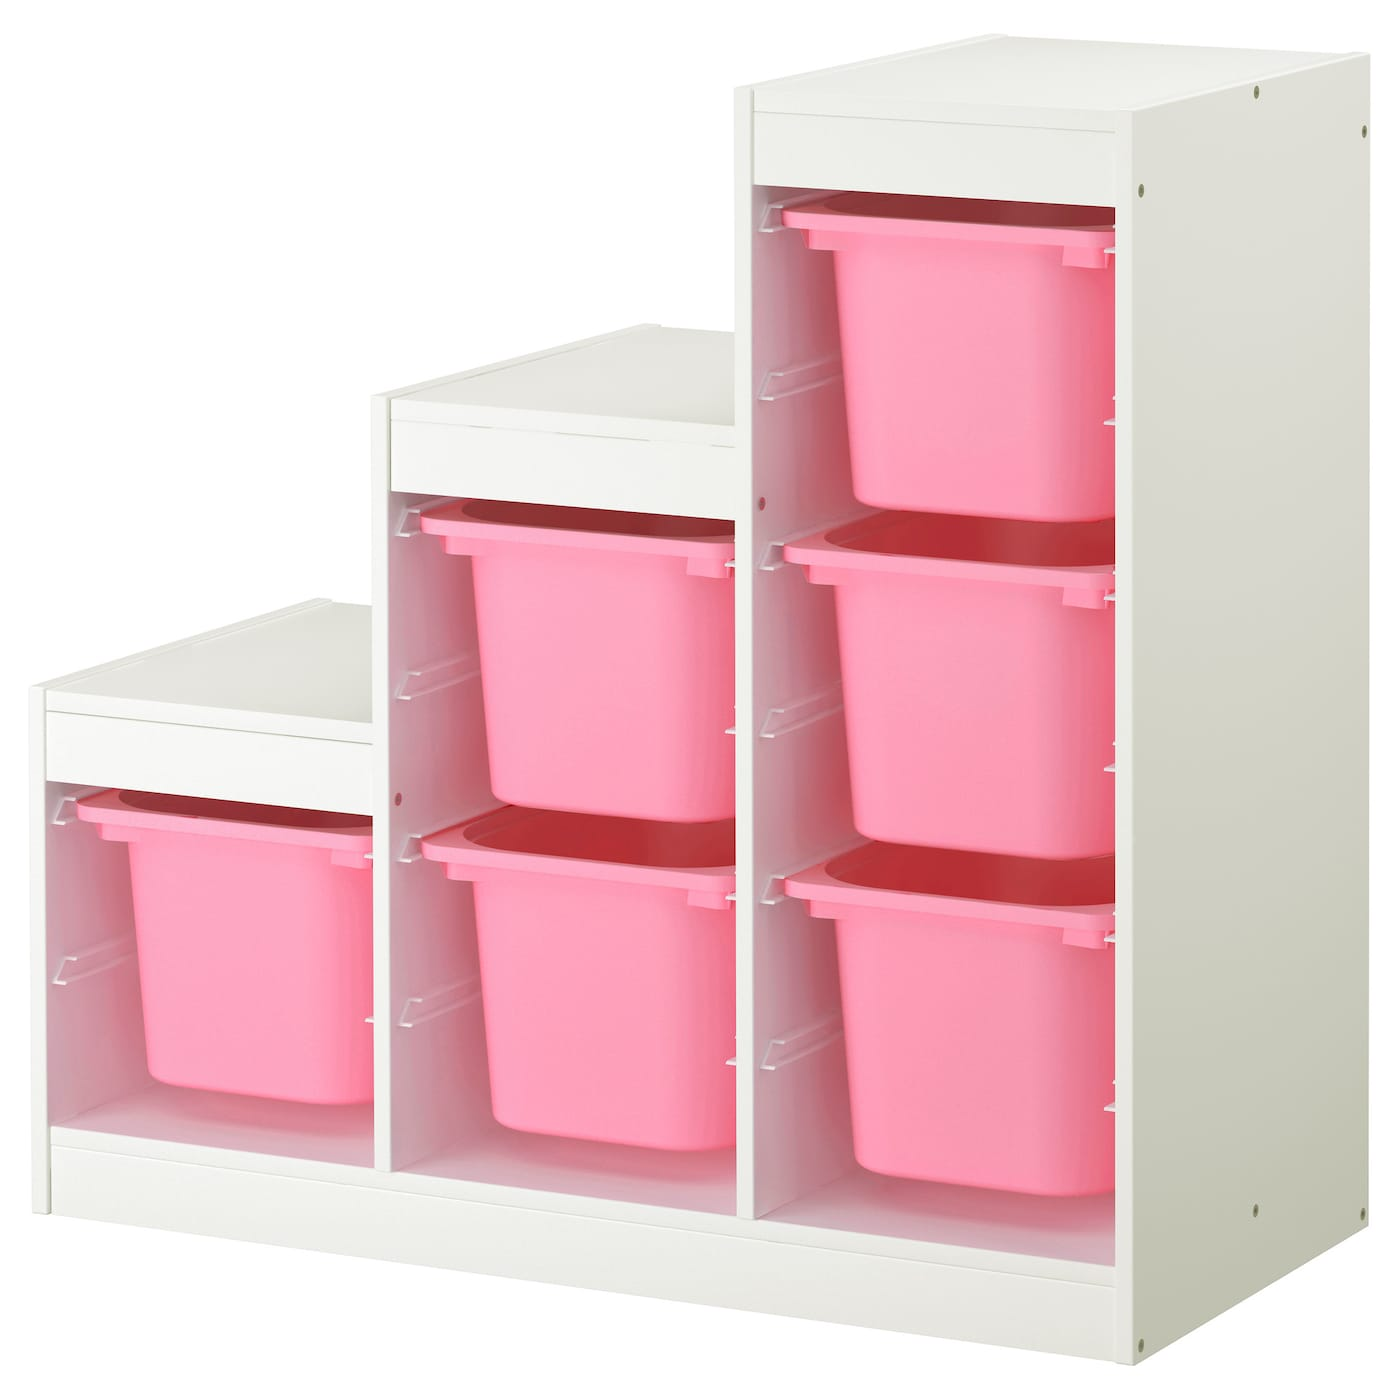 trofast storage combination white pink 99x44x94 cm ikea. Black Bedroom Furniture Sets. Home Design Ideas